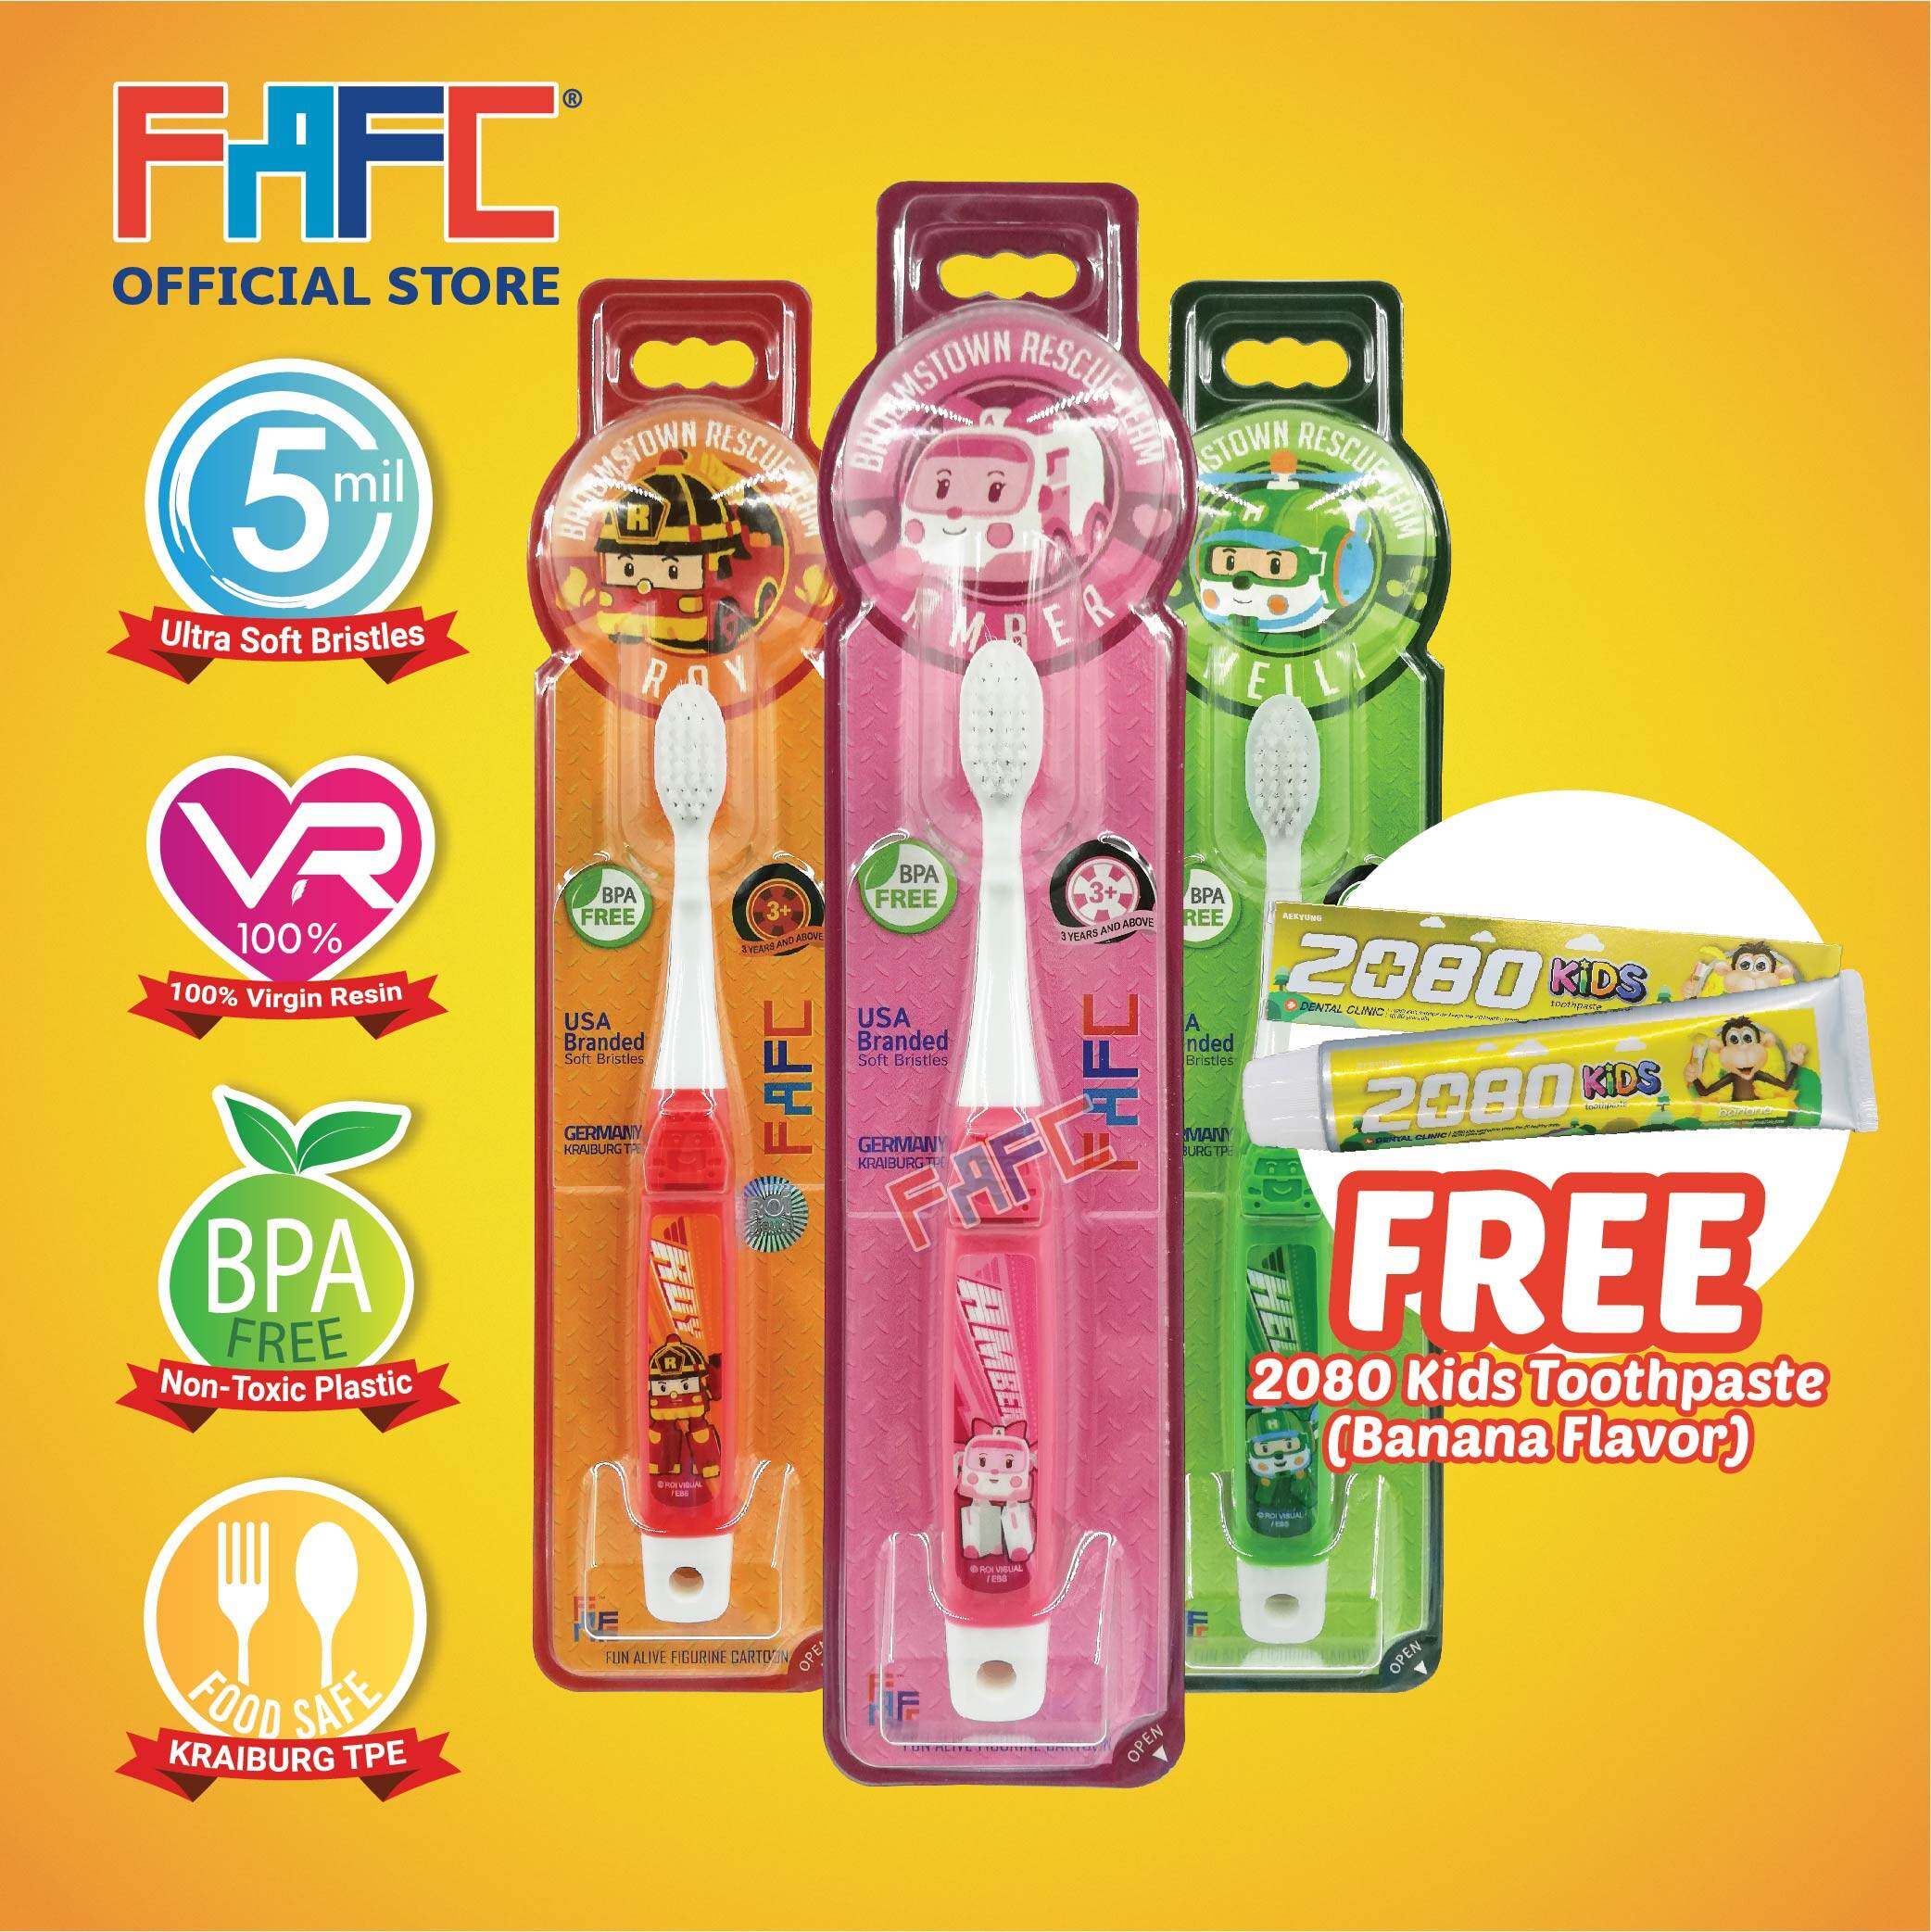 AMBER ROY HELLY - (3 Pcs) FAFC Robocar Poli Hook Kids Toothbrush FREE 2080 Kids Toothpaste (Banana Flavor)